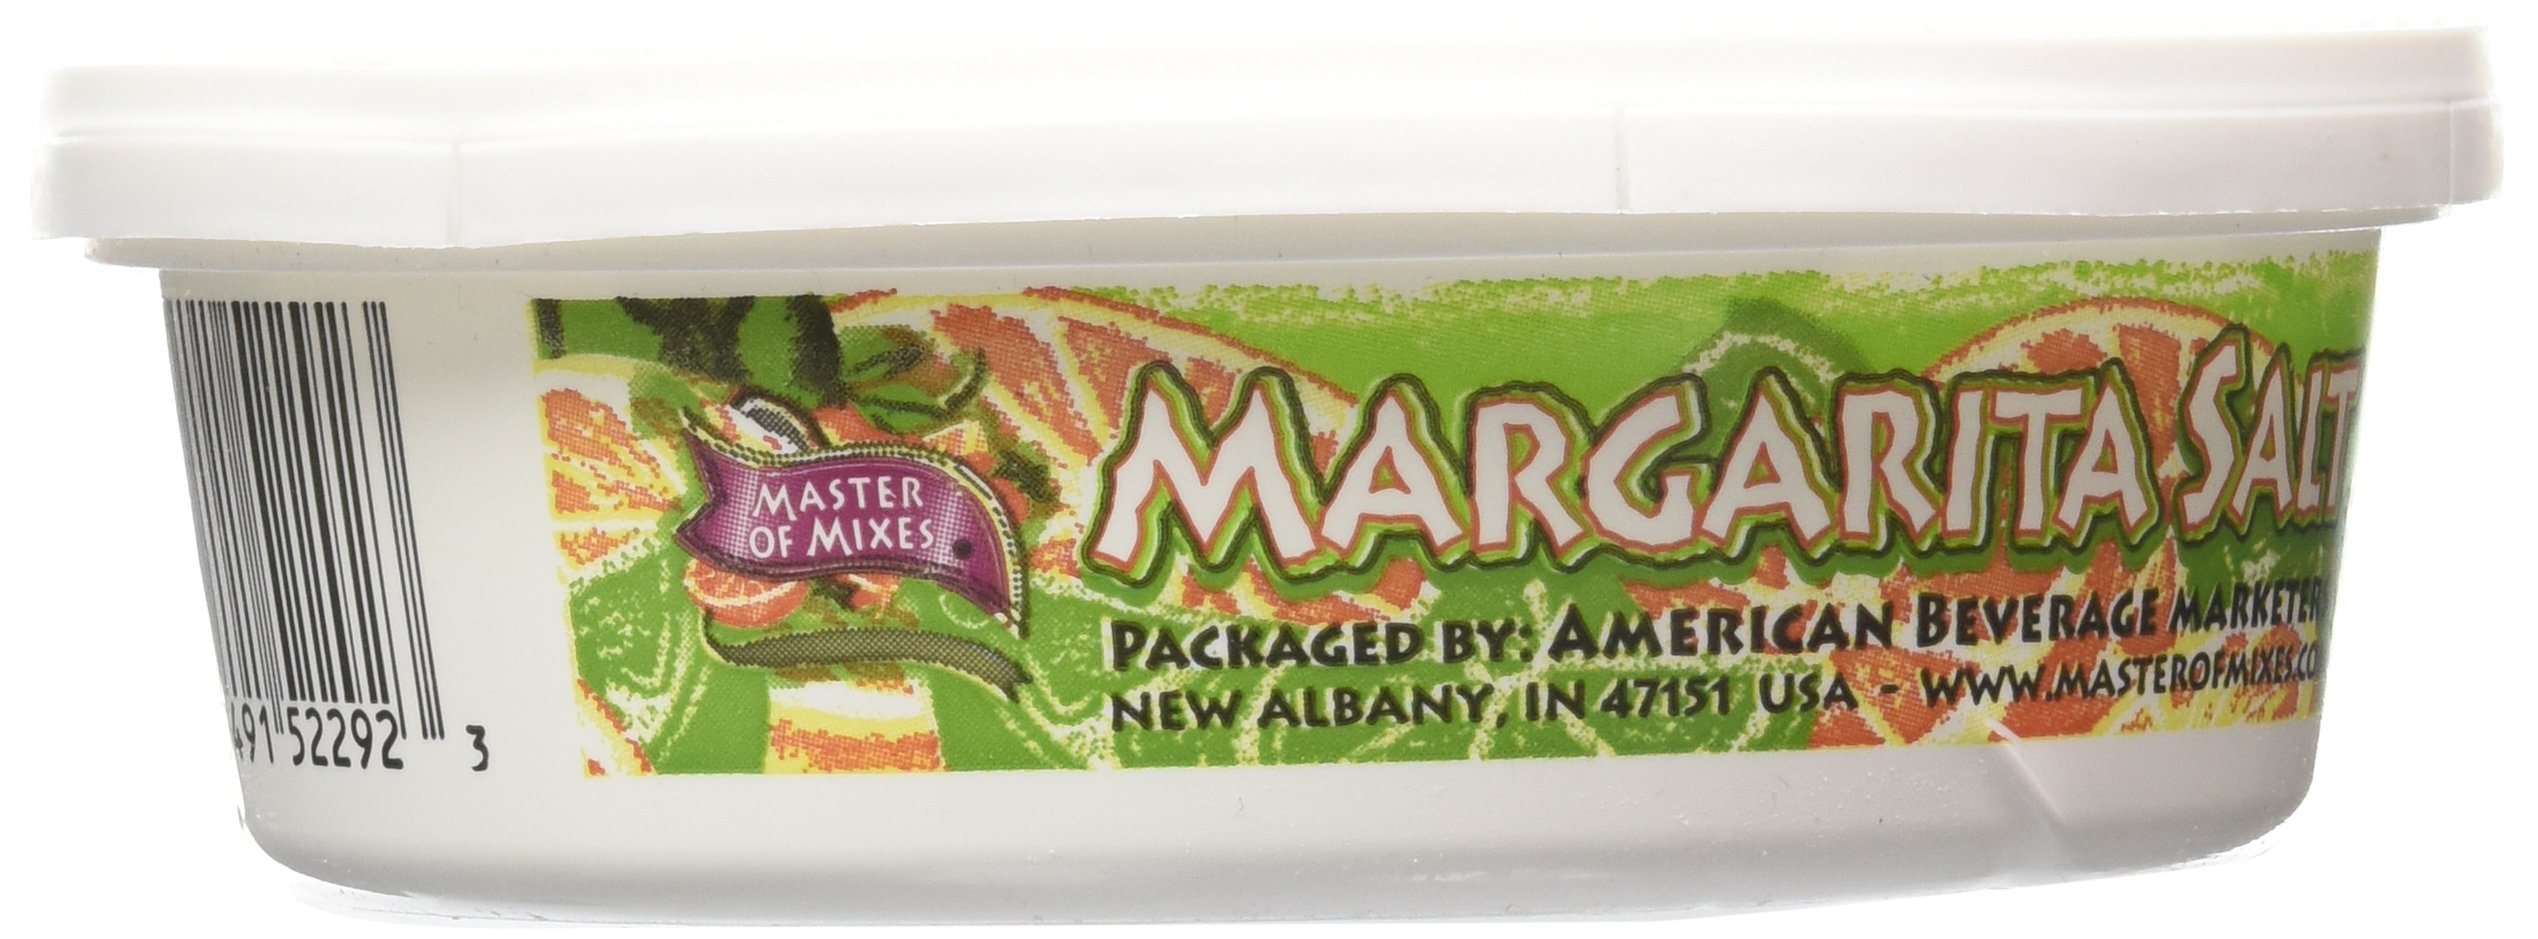 Master of Mixes Margarita Salt,  8-Ounce (Pack of 12) by Master of Mixes (Image #5)